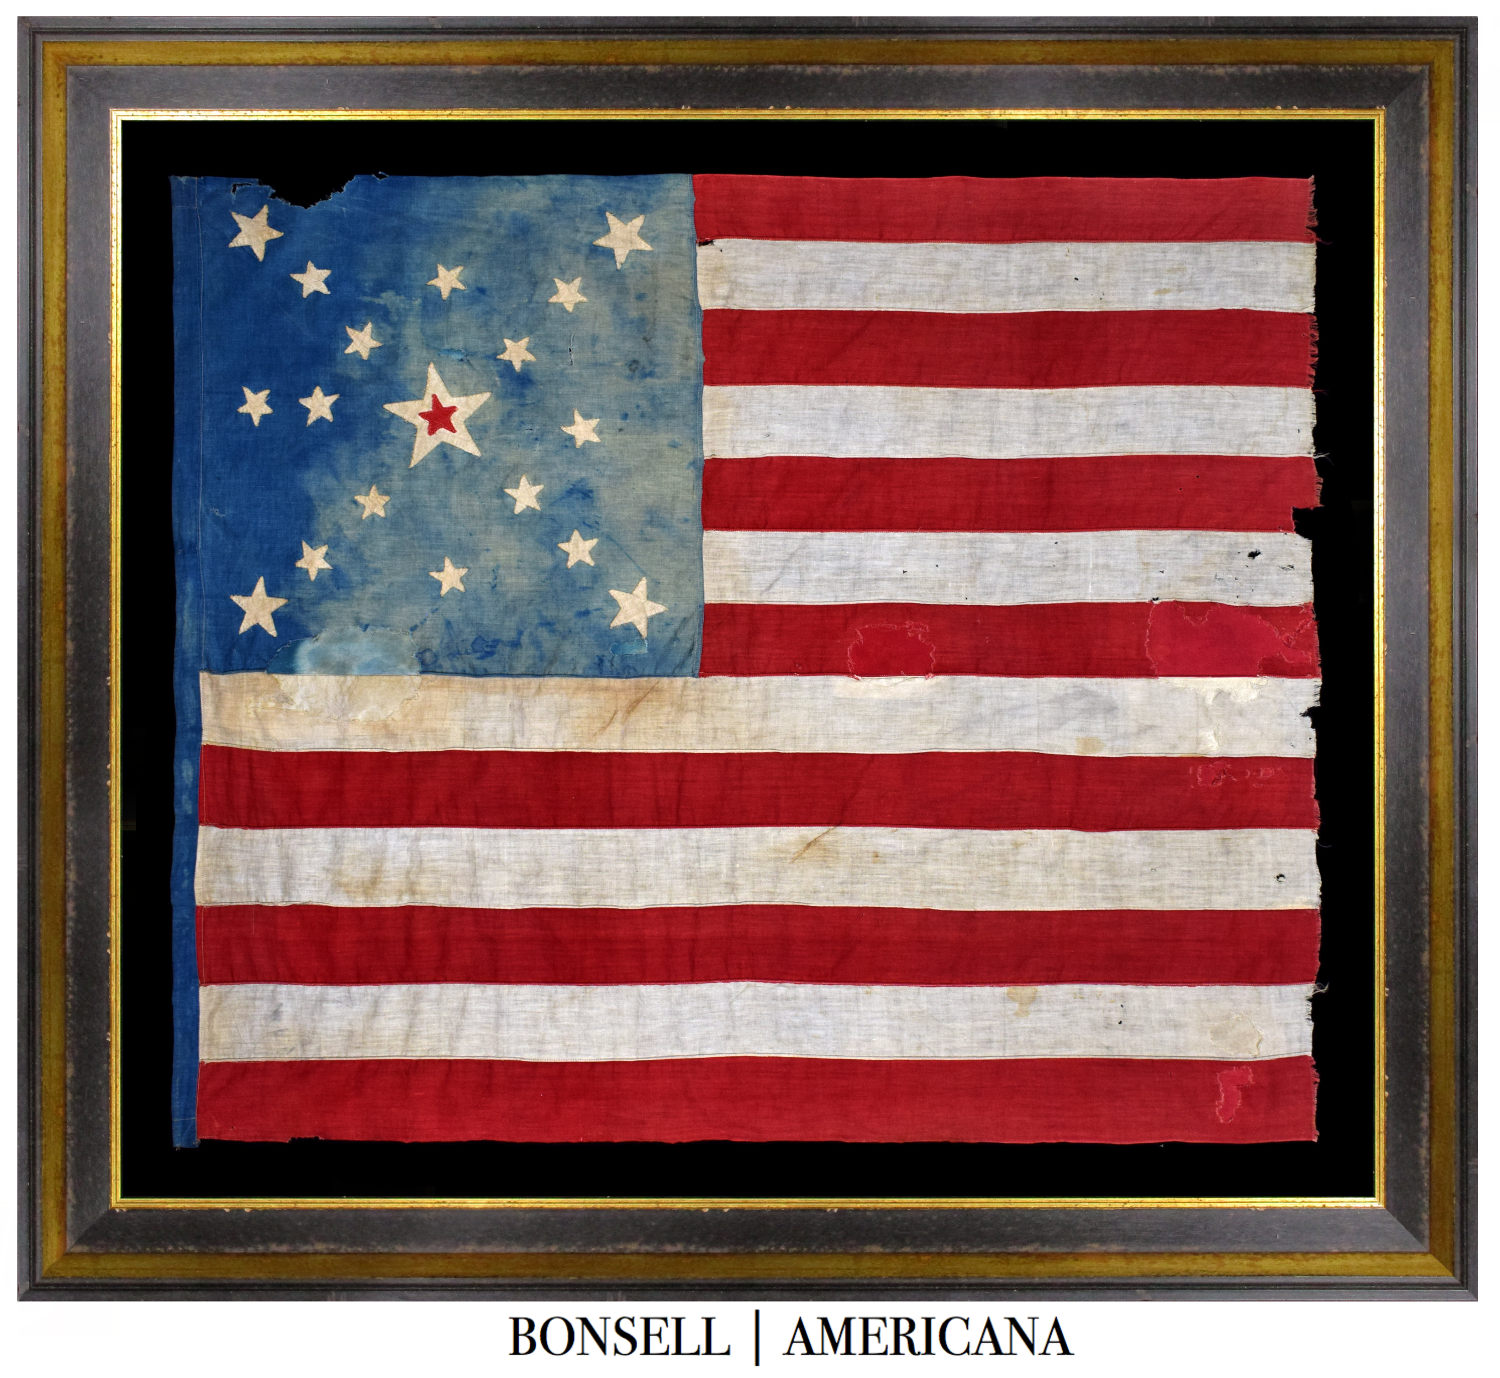 18 Star Antique Flag with Center Star